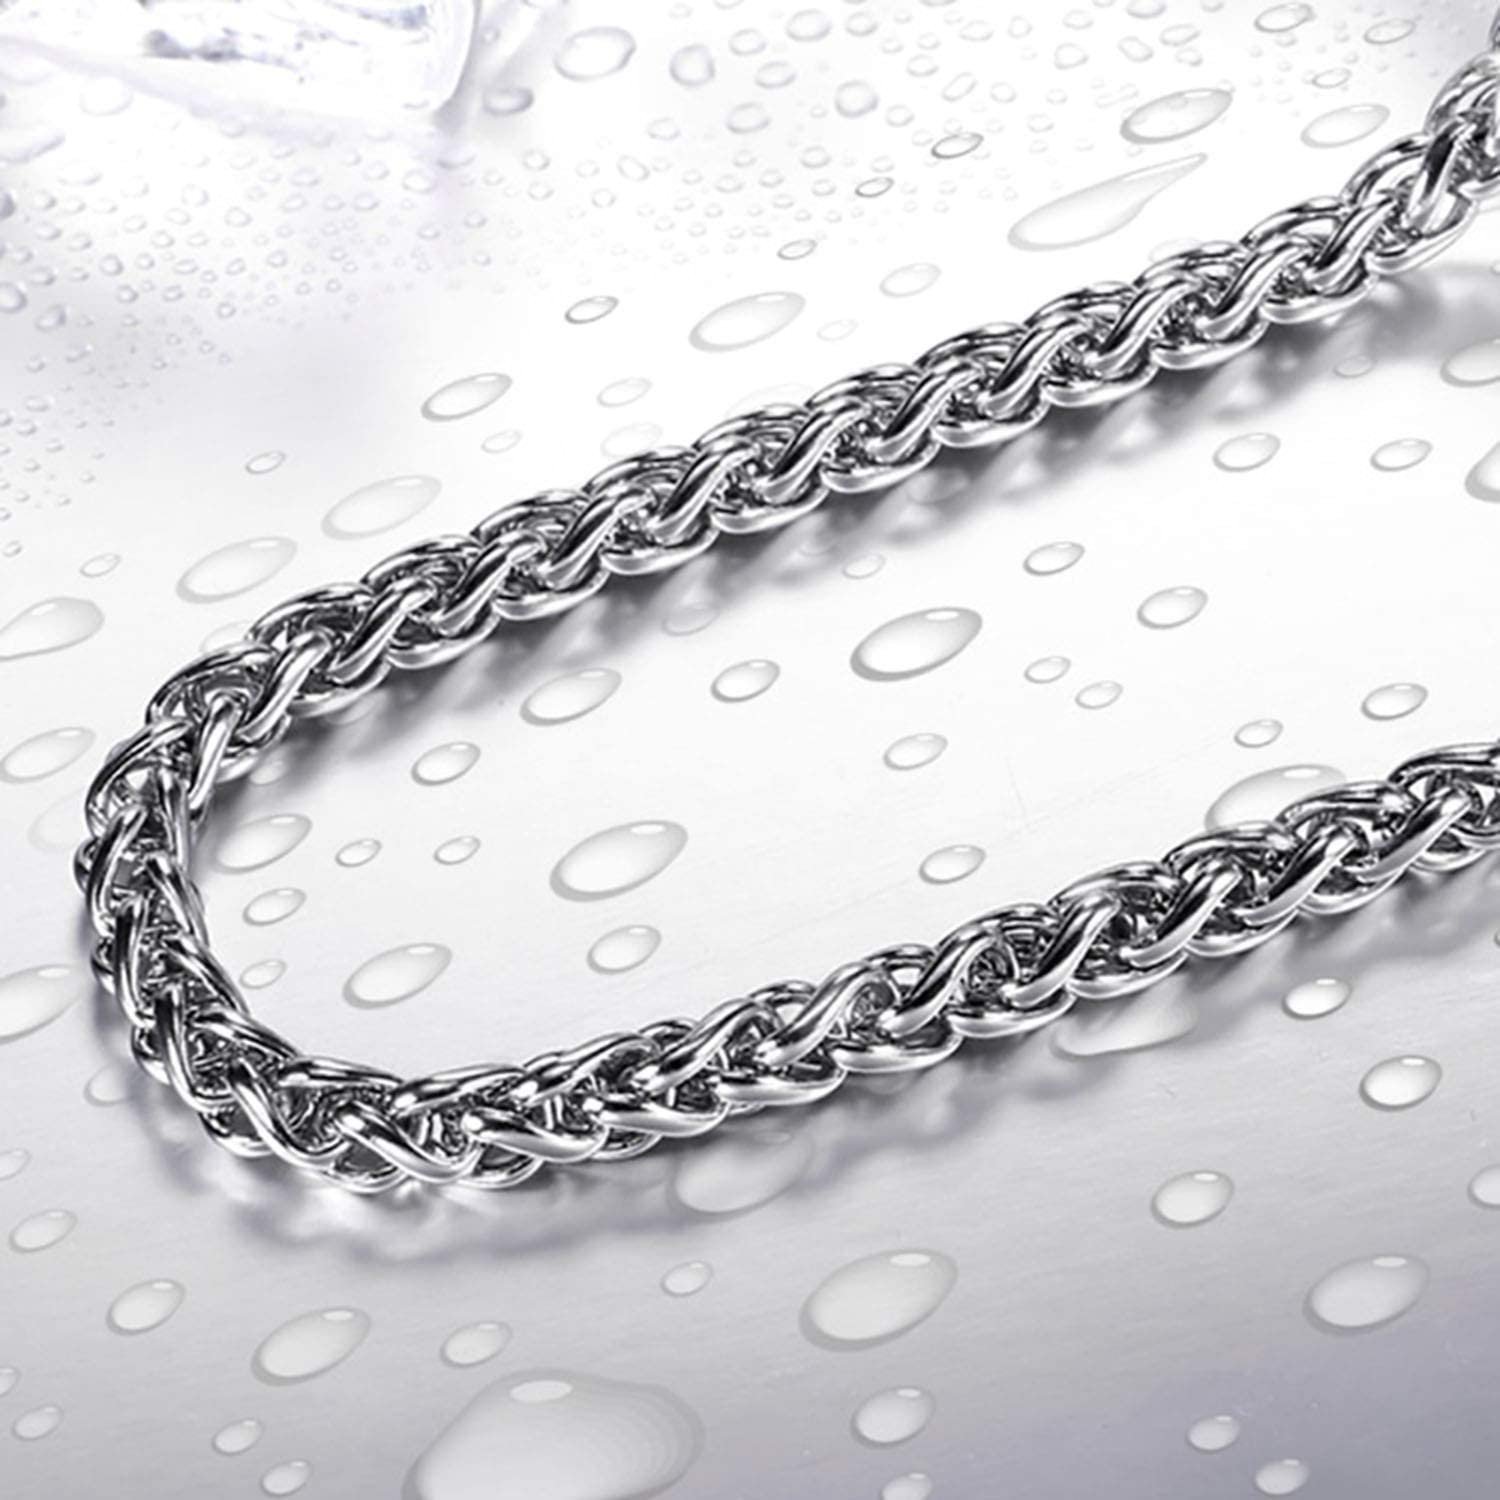 BAVAHA 316L Stainless Steel Trendy Chain Width 3mm//4mm//5mm Necklace boy Man Necklace Chain Silver Colour Fashion Jewelry 6mm Width,60cm 24inch